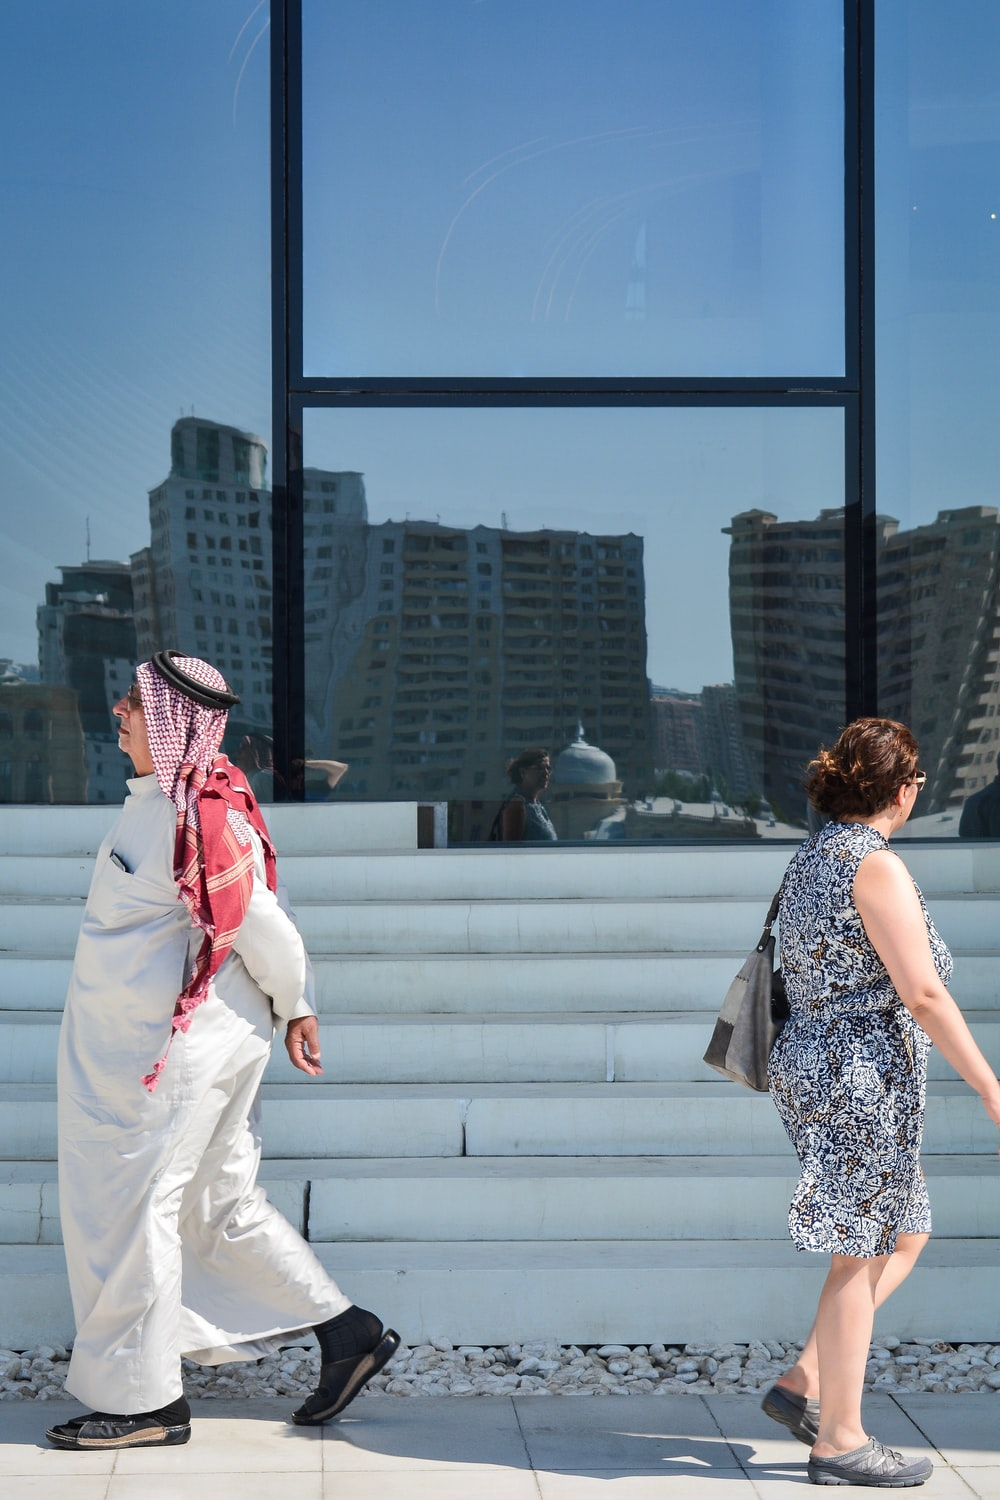 man and woman walking near glass building during daytime